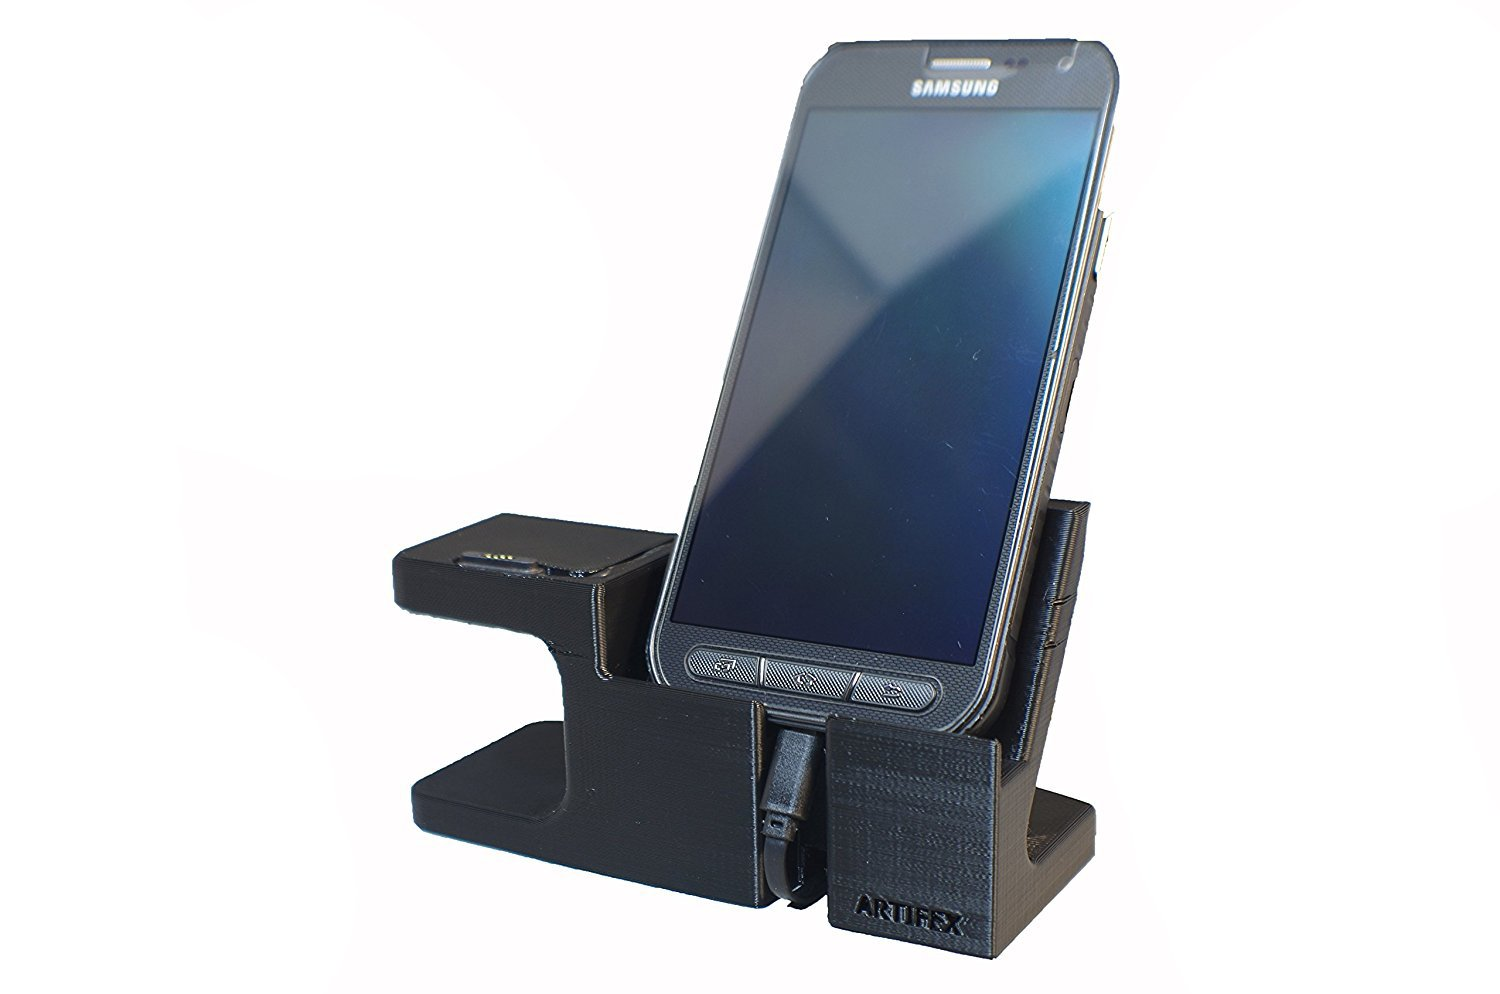 Artifex Design Stand Configured for ASUS ZenWatch 2 Stand, Charging Dock Stand for ZenWatch2, 3D Printed Technology, Smartwatch Cradle (Combo Stand)